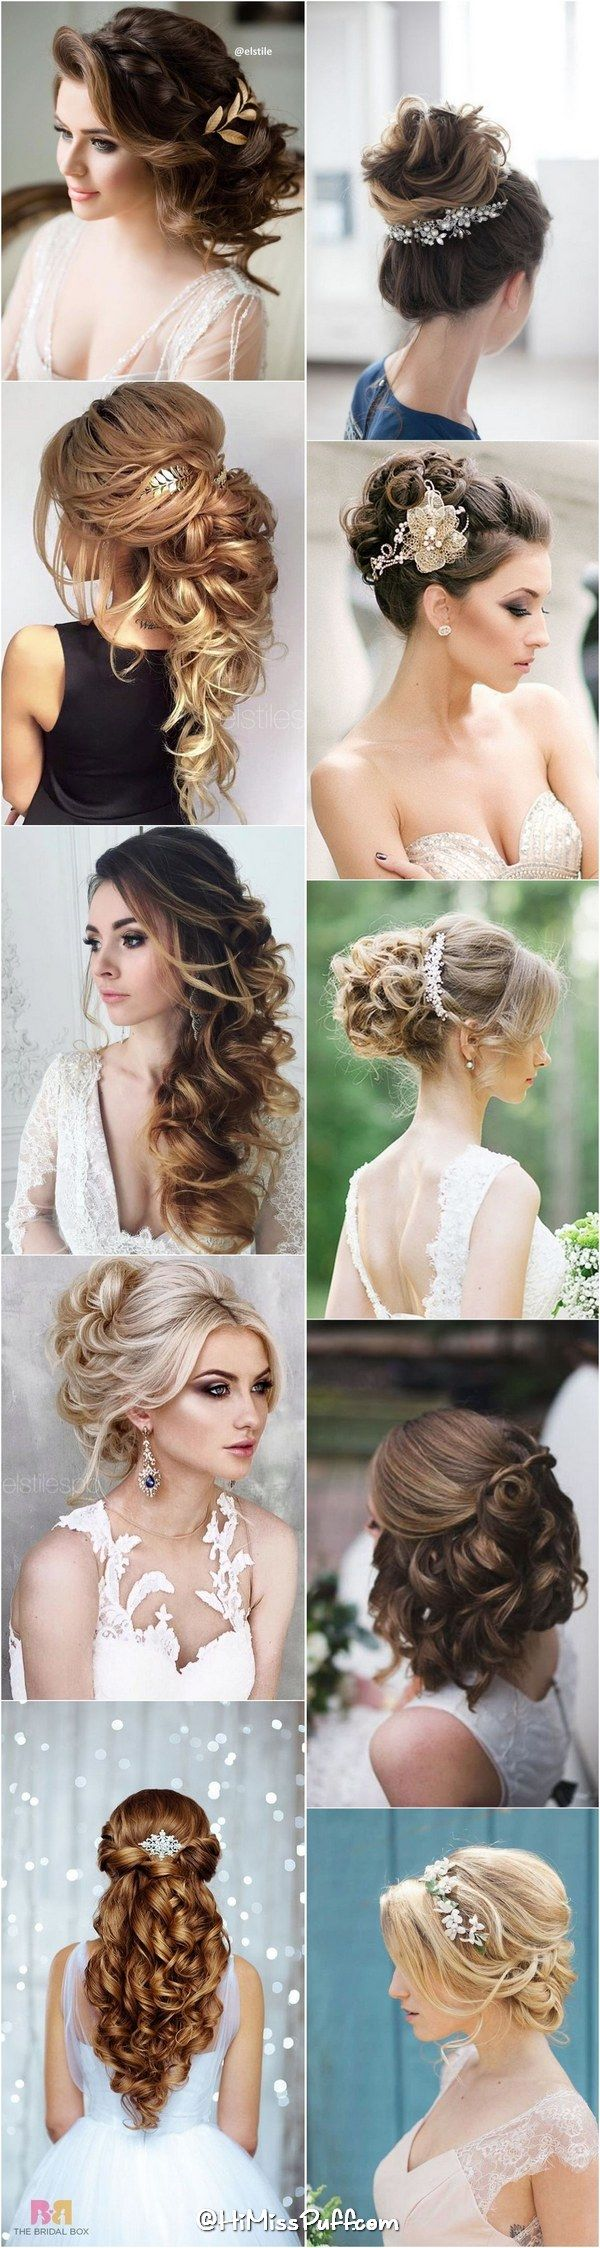 200 Bridal Wedding Hairstyles for Long Hair That Will Inspire / www.himisspuff.c...